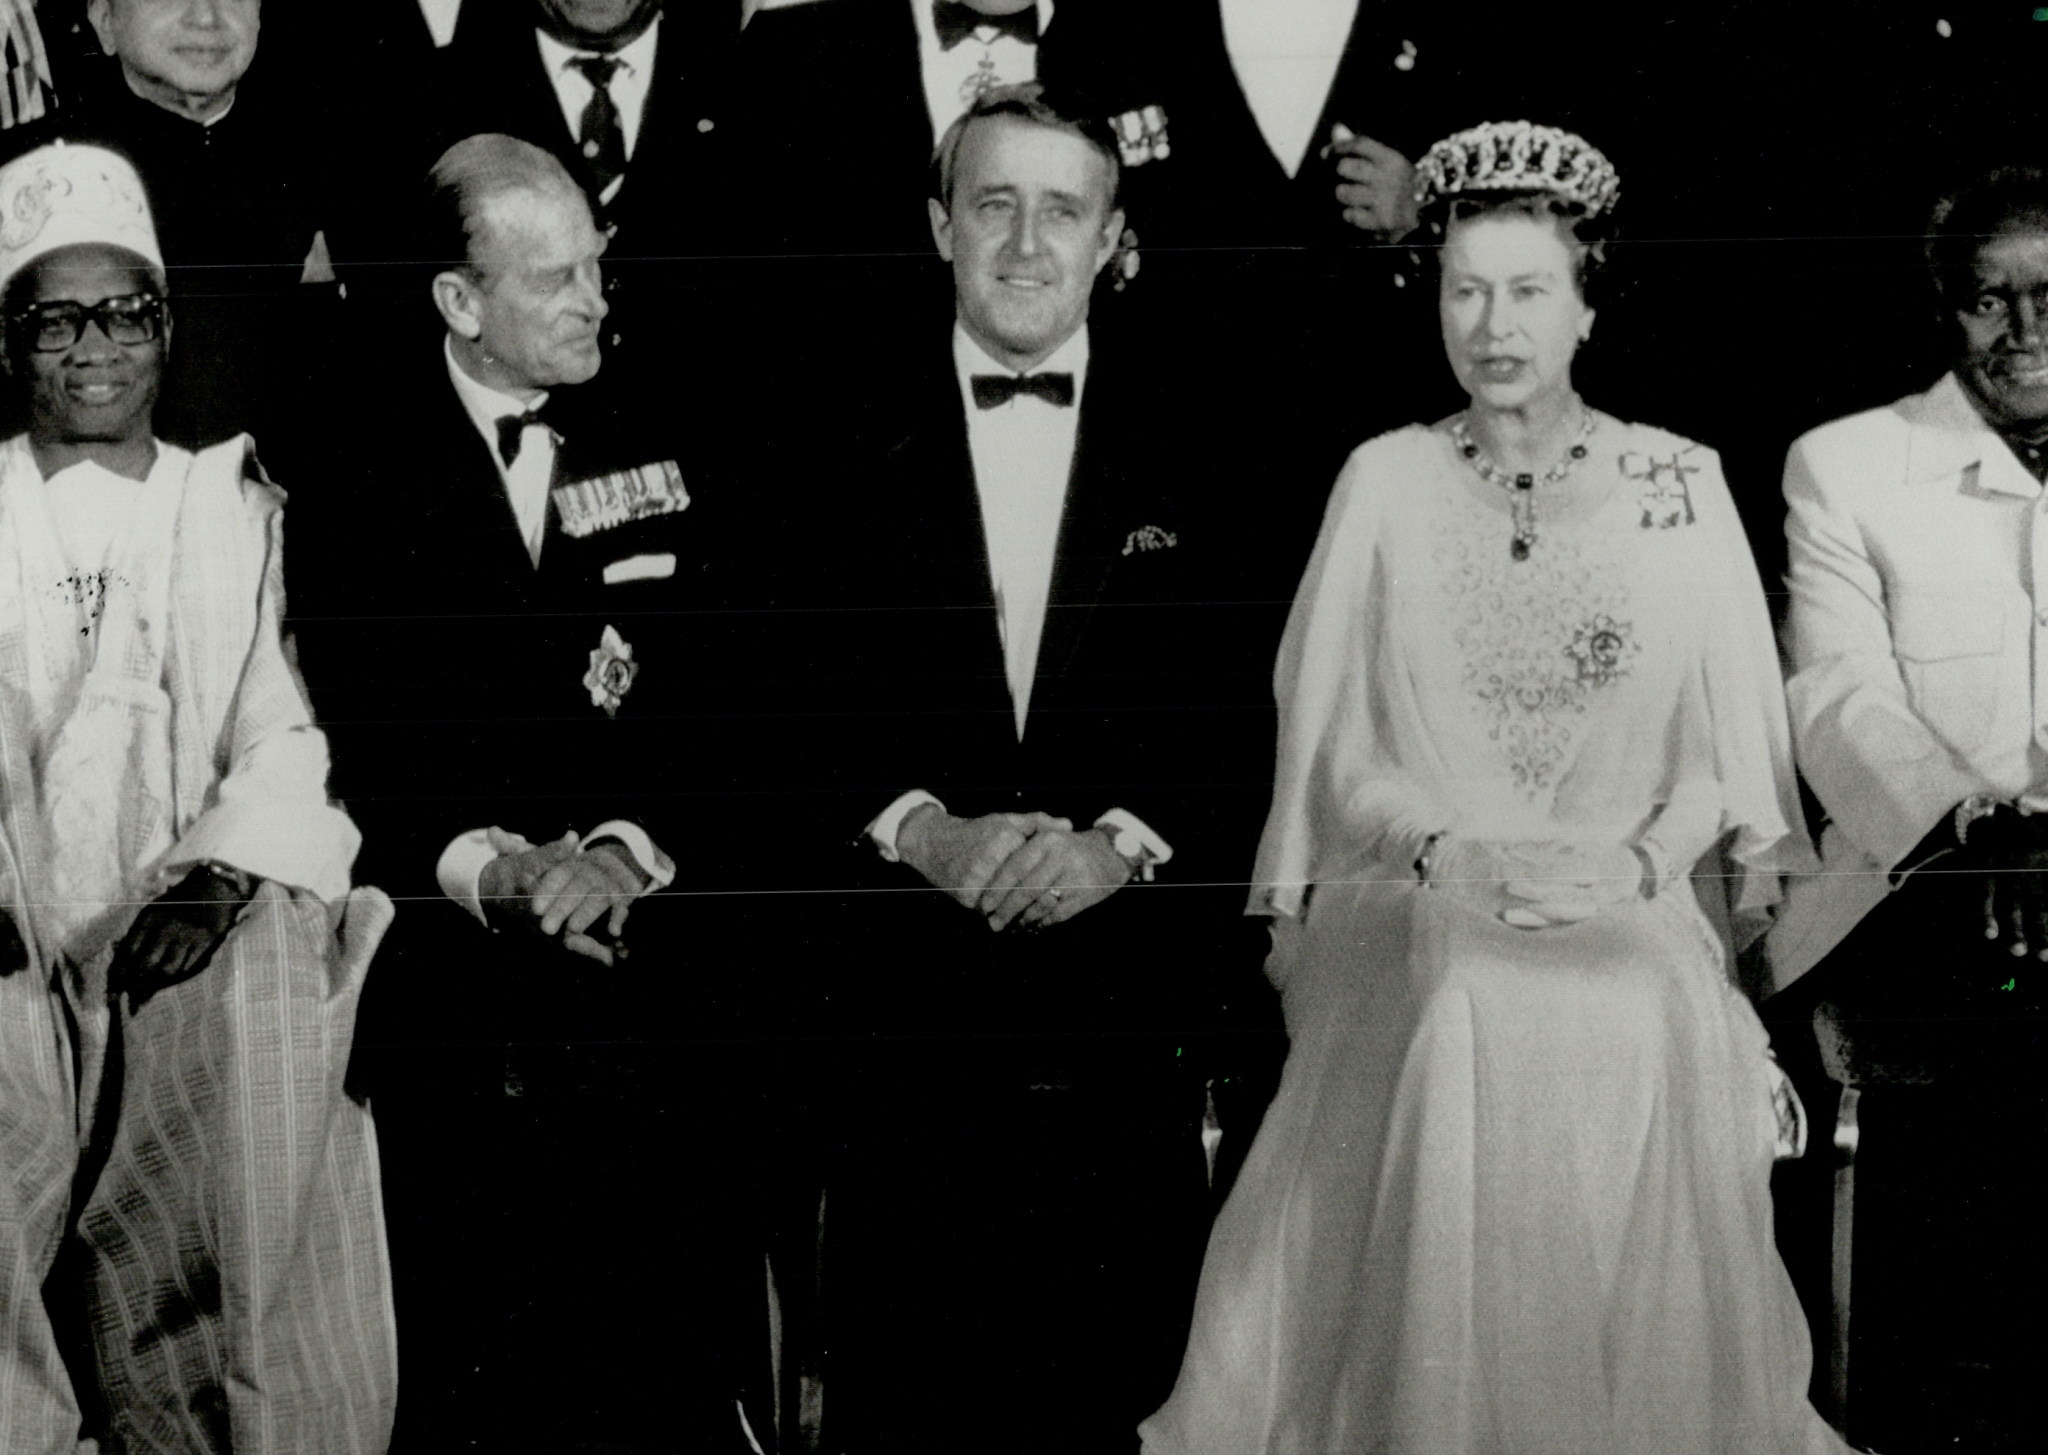 Prime Minister Brian Mulroney is flanked by the Queen and Prince Philip while posing for a group photo in Vancouver before the royal couple hosted a dinner for Commonwealth leaders.